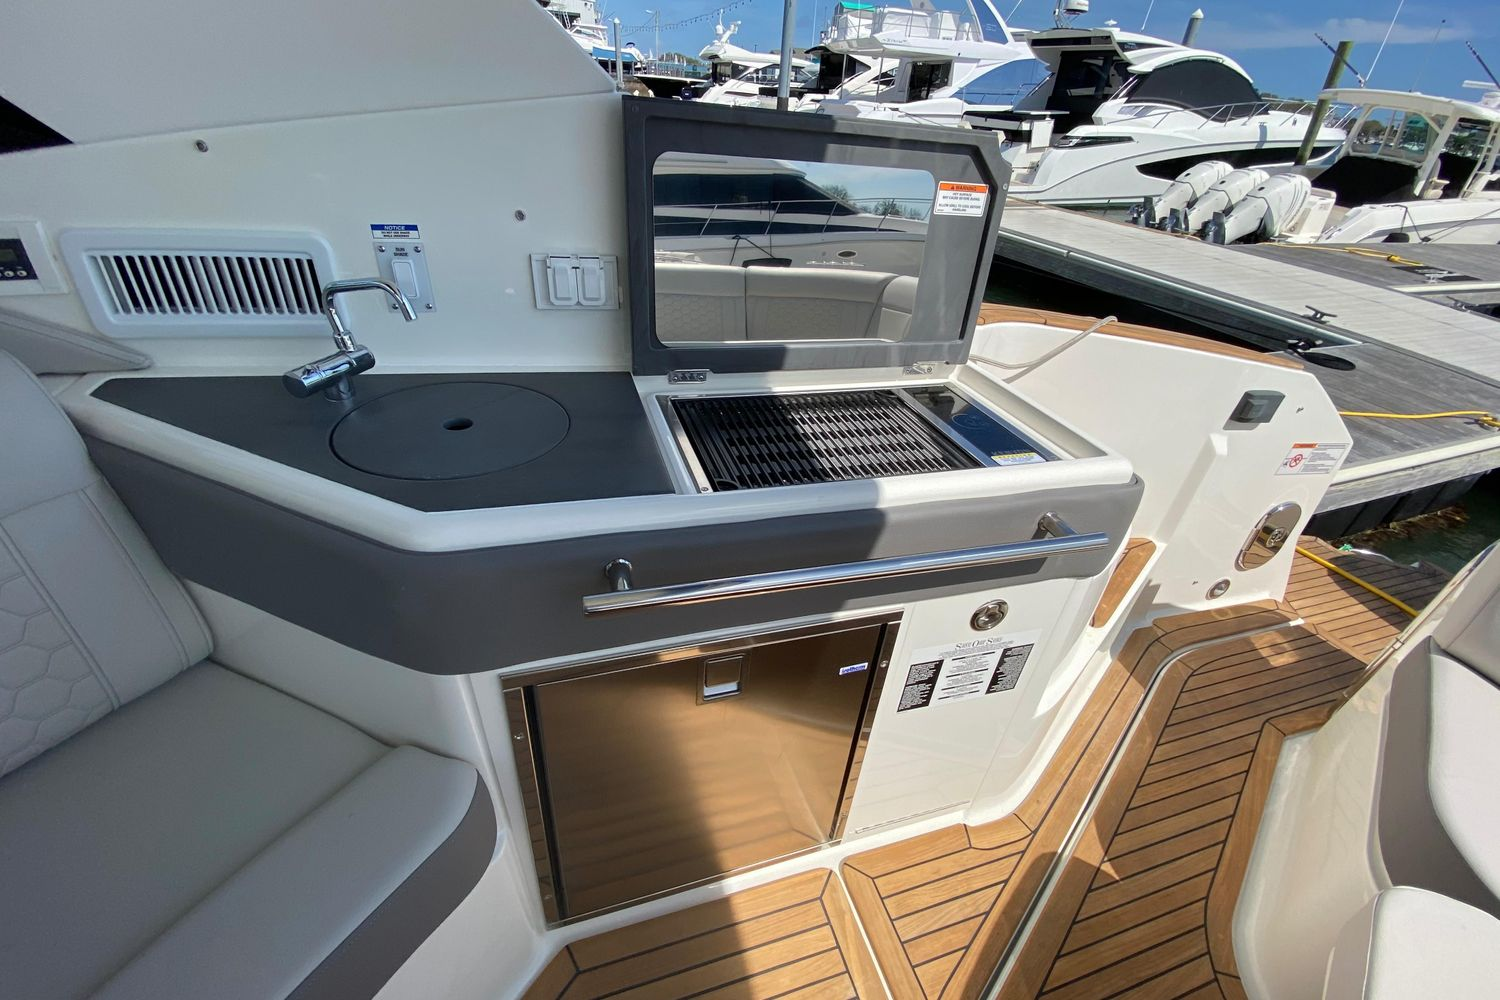 2020 Sea Ray                                                              Sundancer 320 OB Image Thumbnail #7